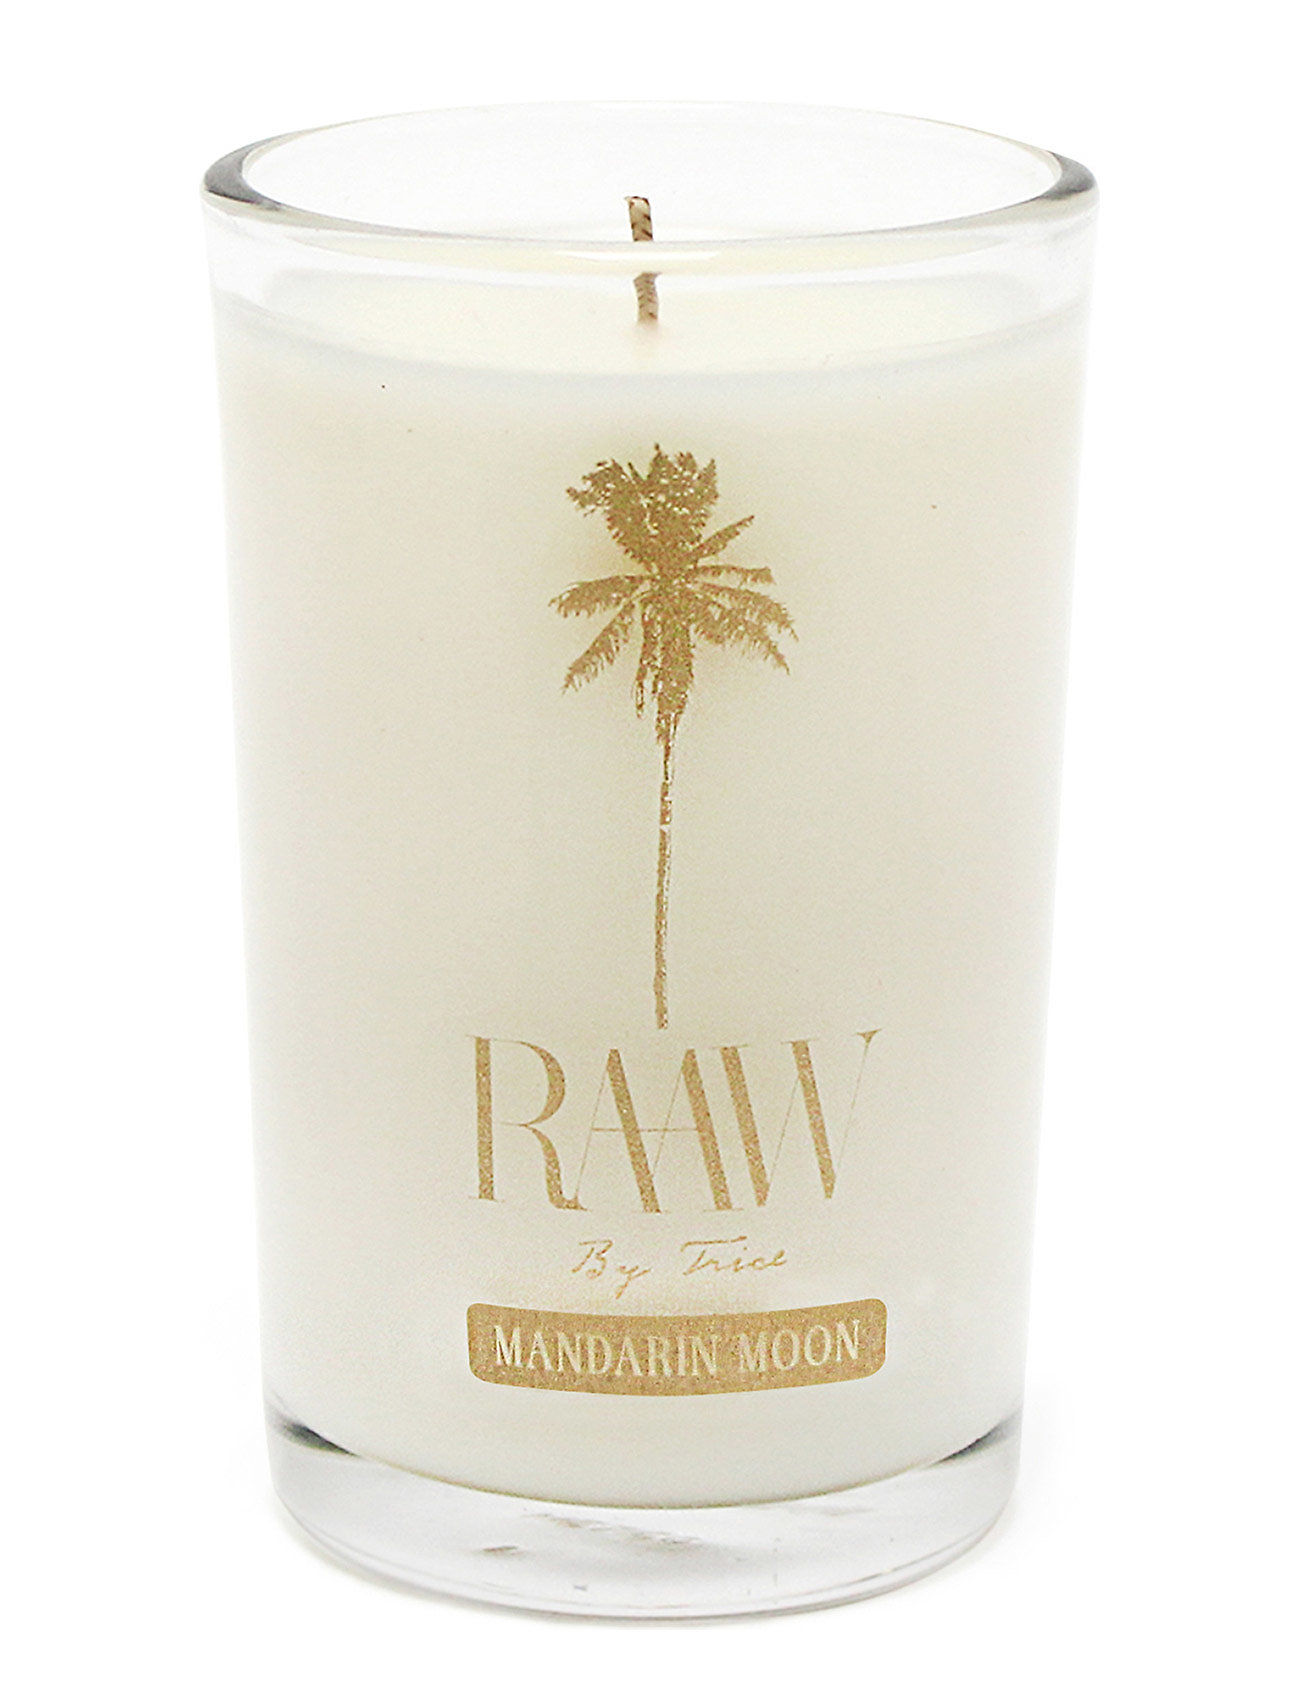 Raaw by Trice MANDARIN MOON SCENTED CANDLE - NO COLOR